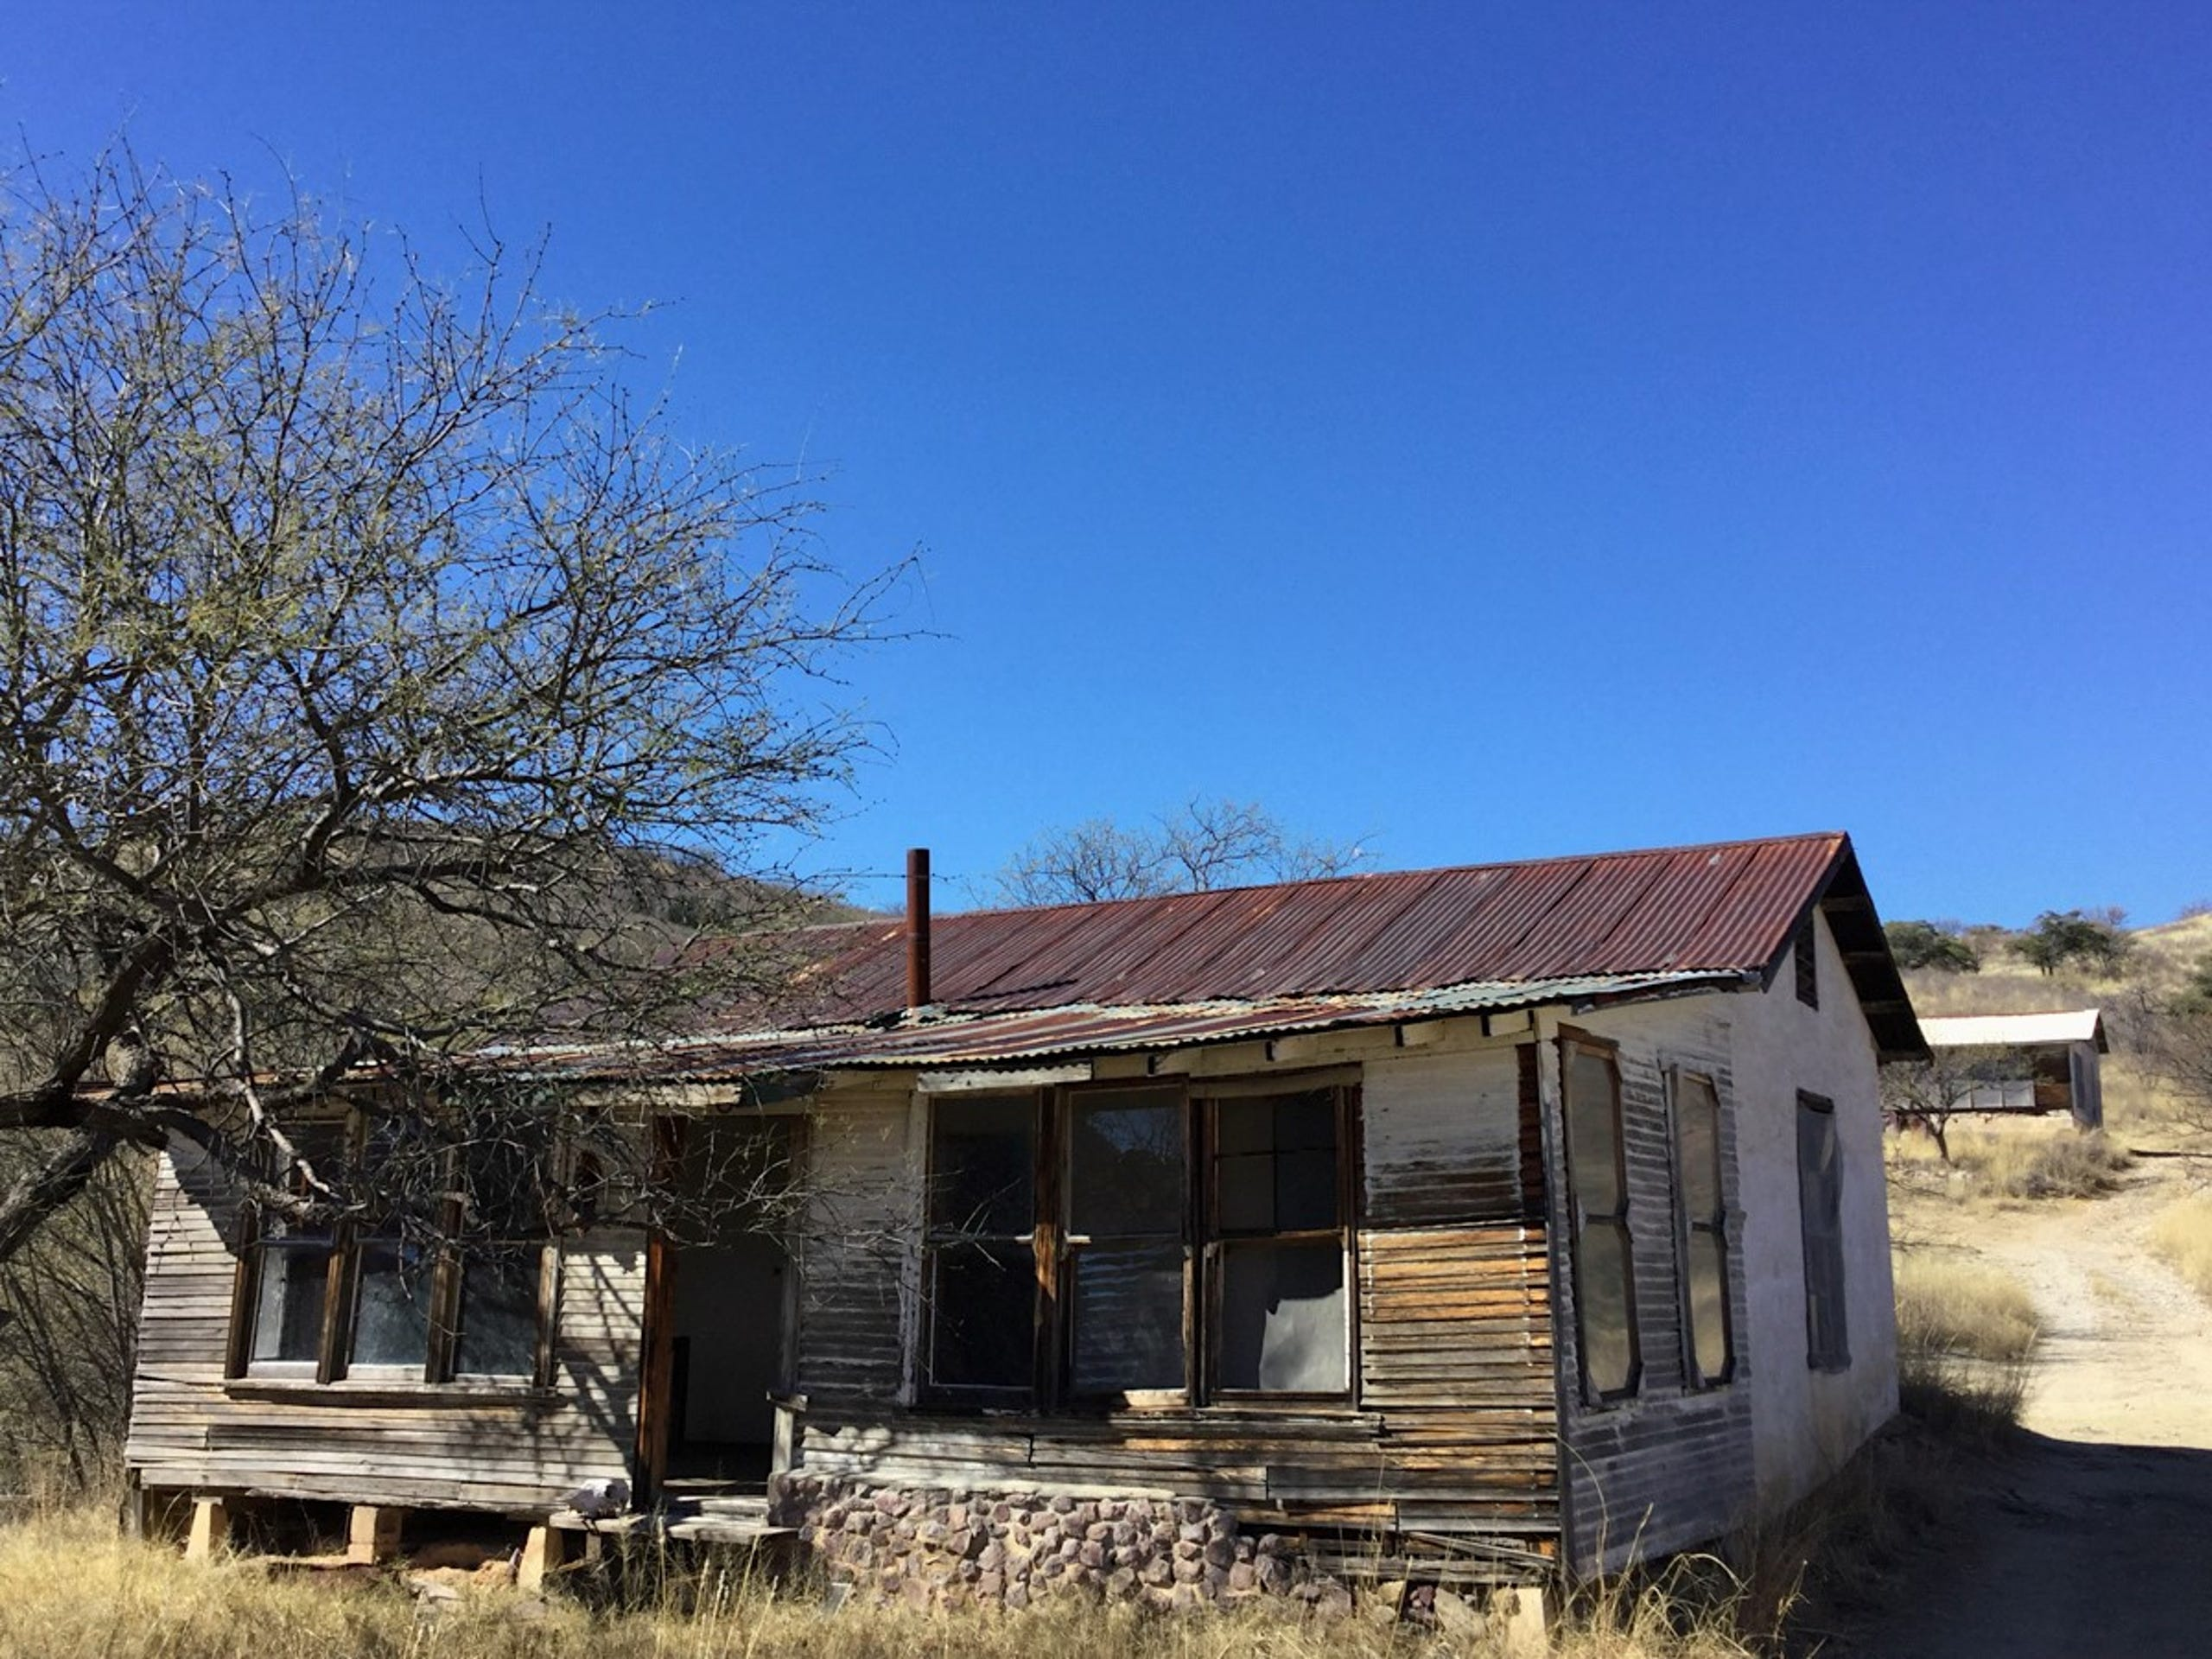 More than a dozen buildings are still standing in the ghost town of Ruby, Arizona.